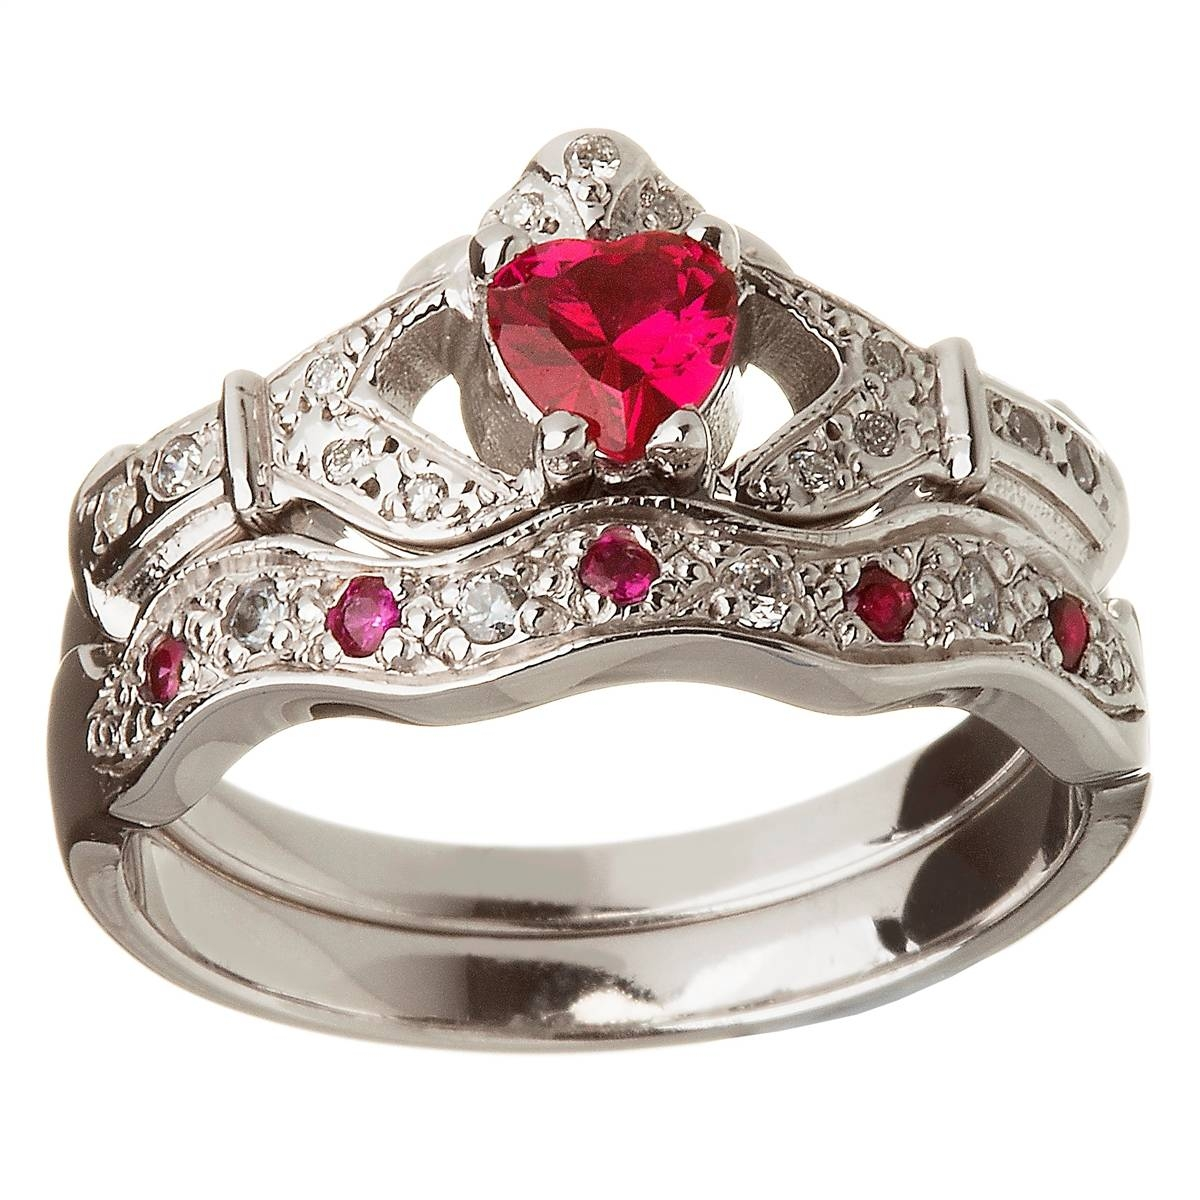 14K White Gold Ruby Set Heart Claddagh Ring & Wedding Ring Set Throughout Emerald Claddagh Engagement Rings (View 2 of 15)